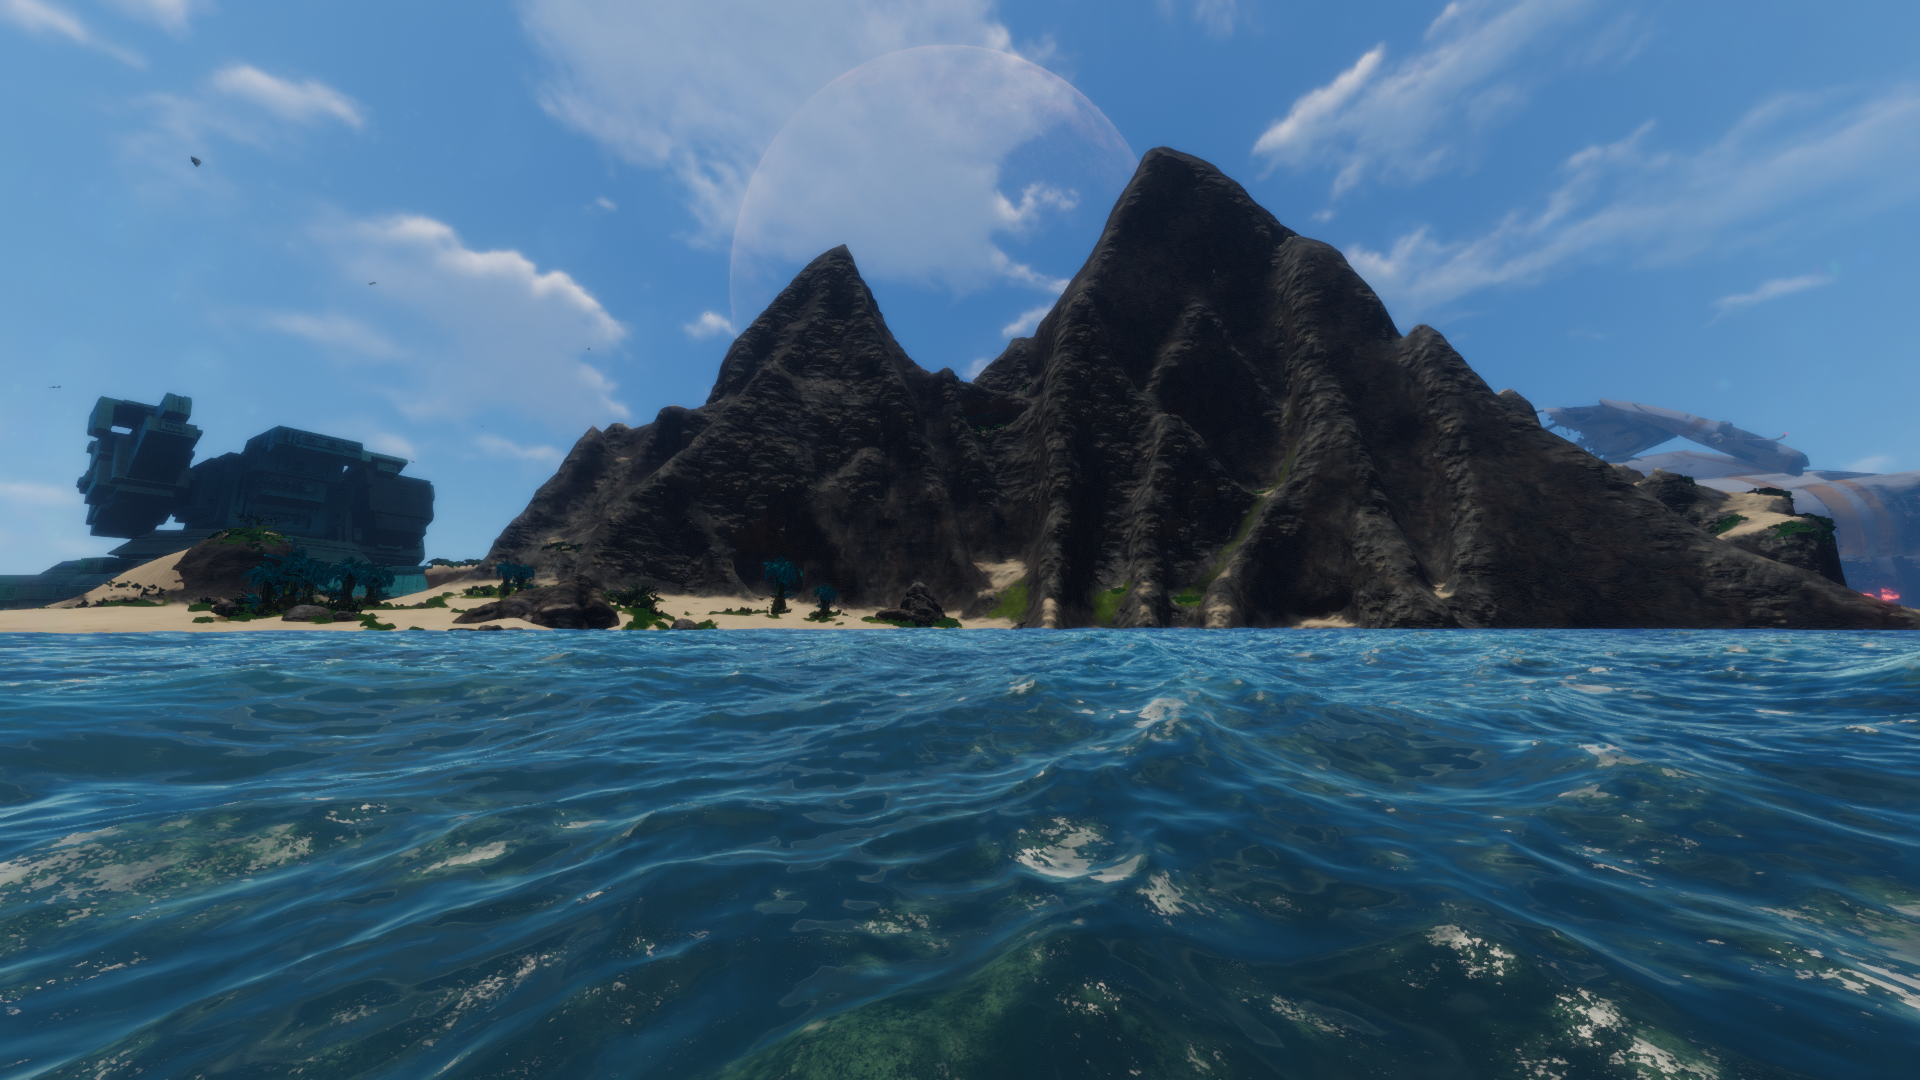 Subnautica Karte Insel.Mountain Island Subnautica Wikia Fandom Powered By Wikia